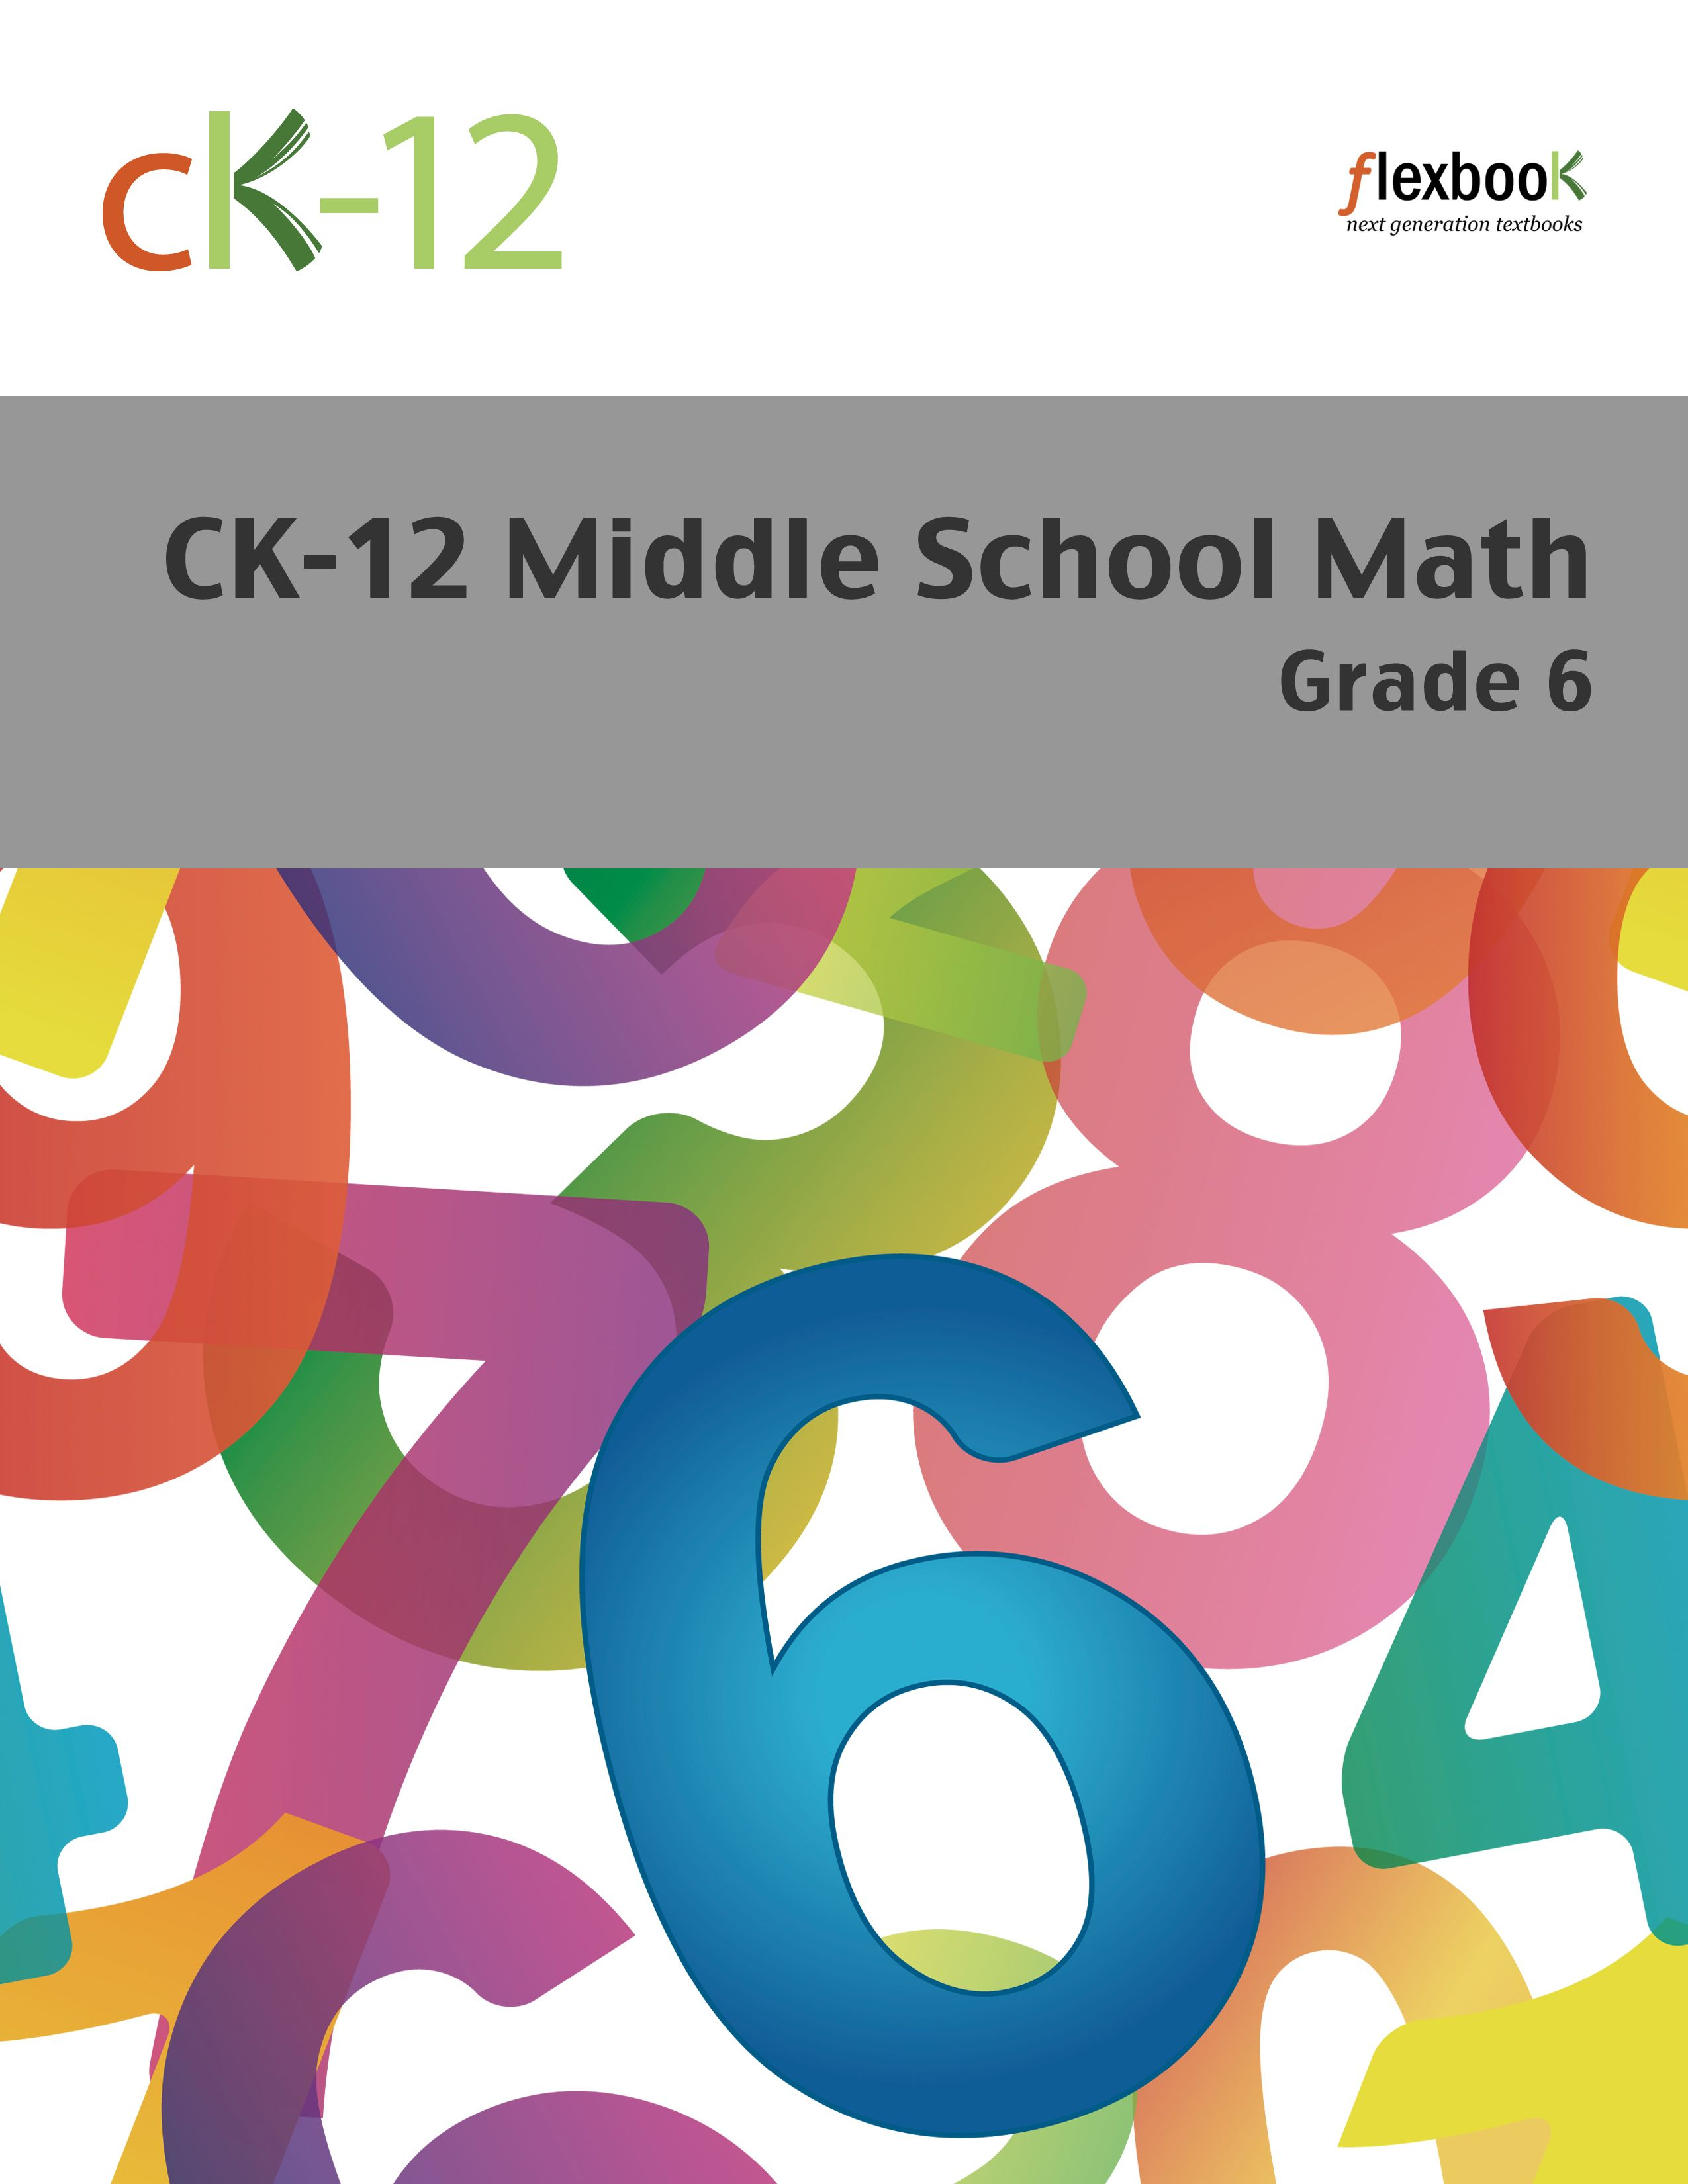 Access this FlexBook with one click: http://www.ck12.org/book/CK-12 ...